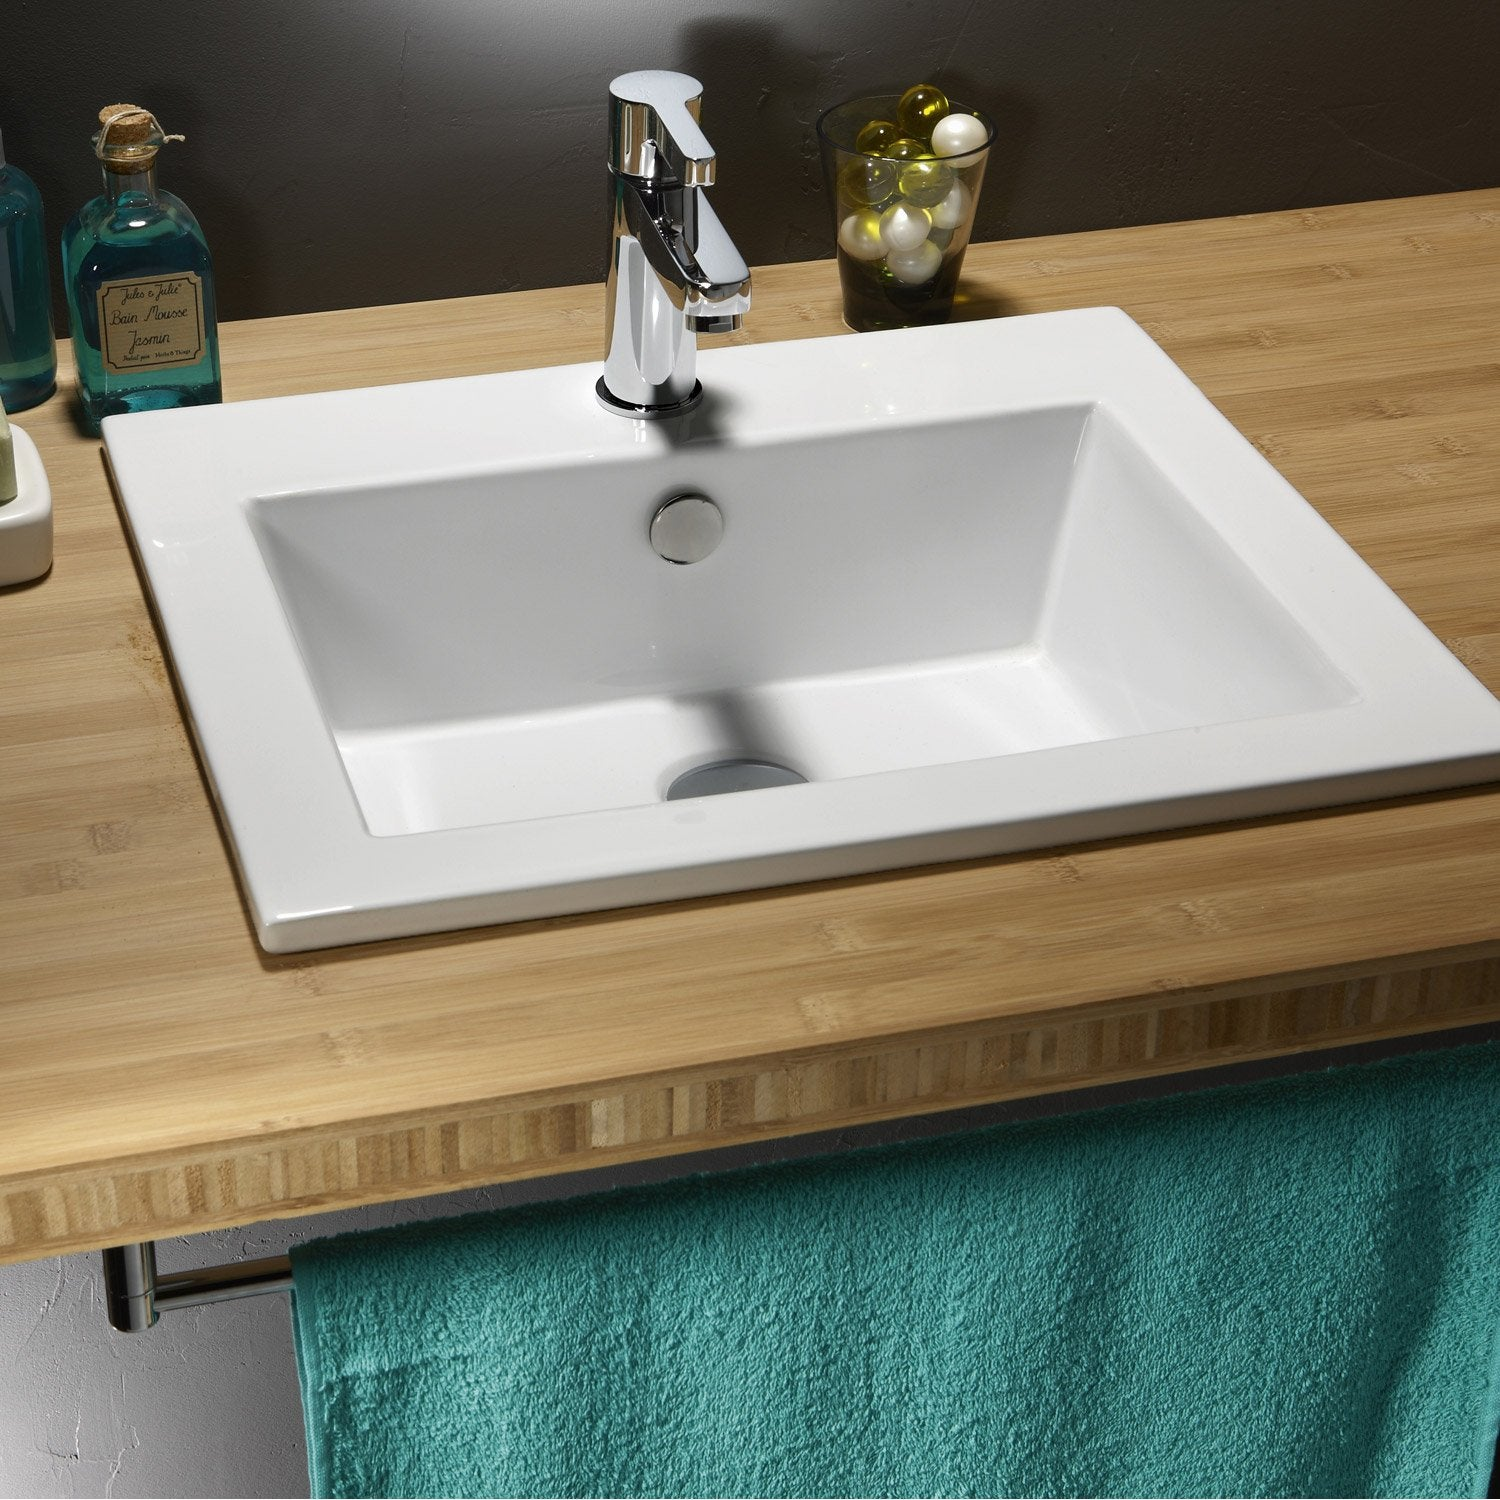 Vasque encastrer c ramique x cm blanc keo for Ensemble lavabo meuble leroy merlin